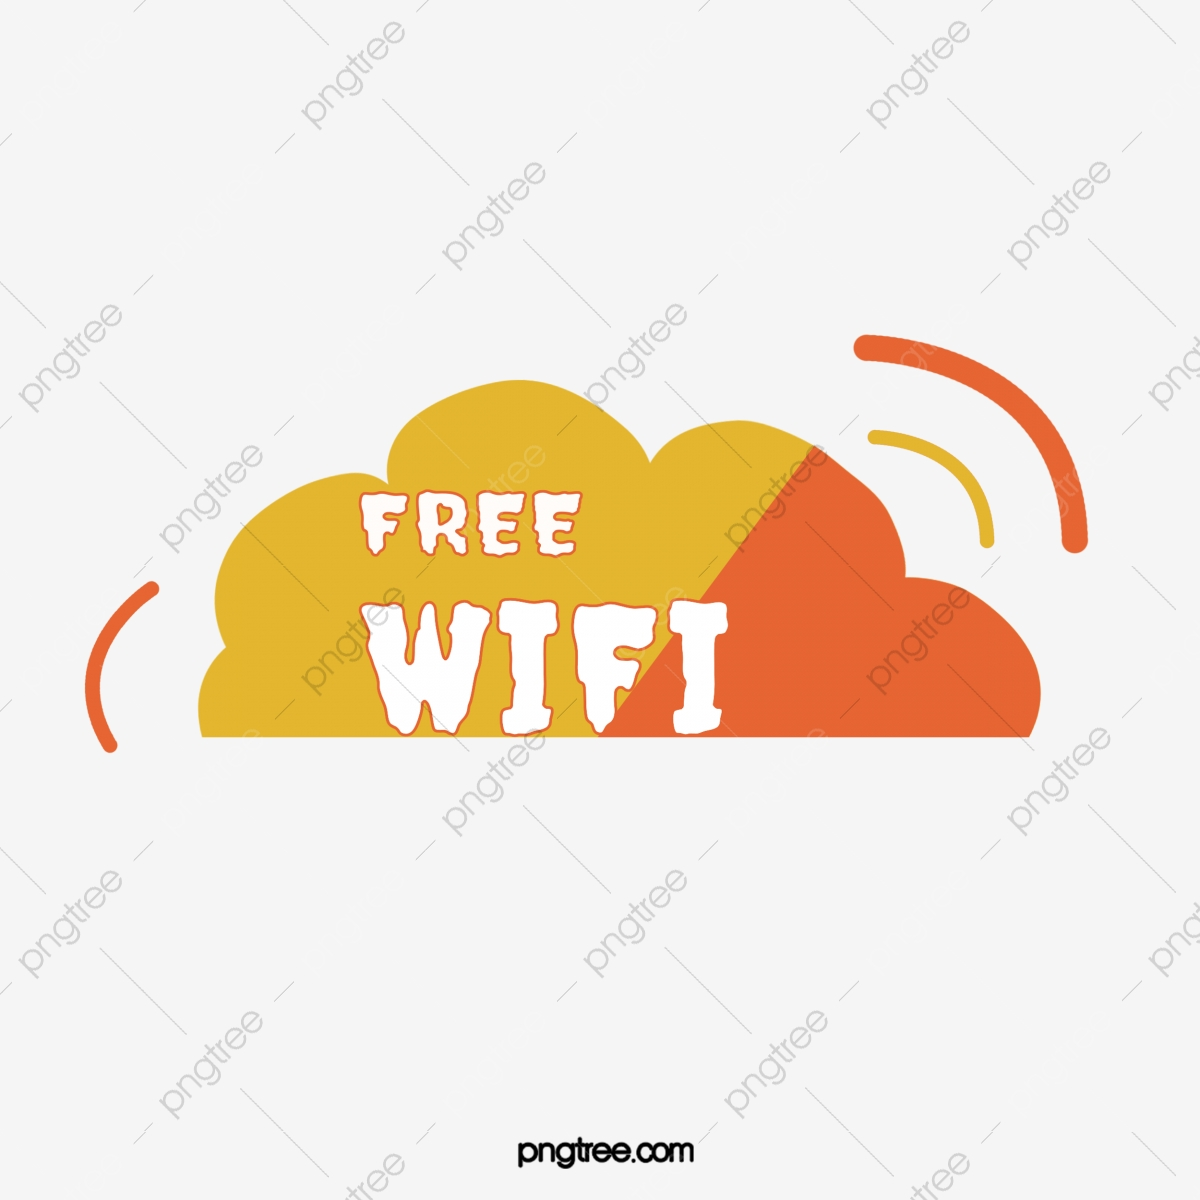 Free Wifi Sign Material Sign Clipart Free Wifi Creative Free Wifi Png Transparent Clipart Image And Psd File For Free Download